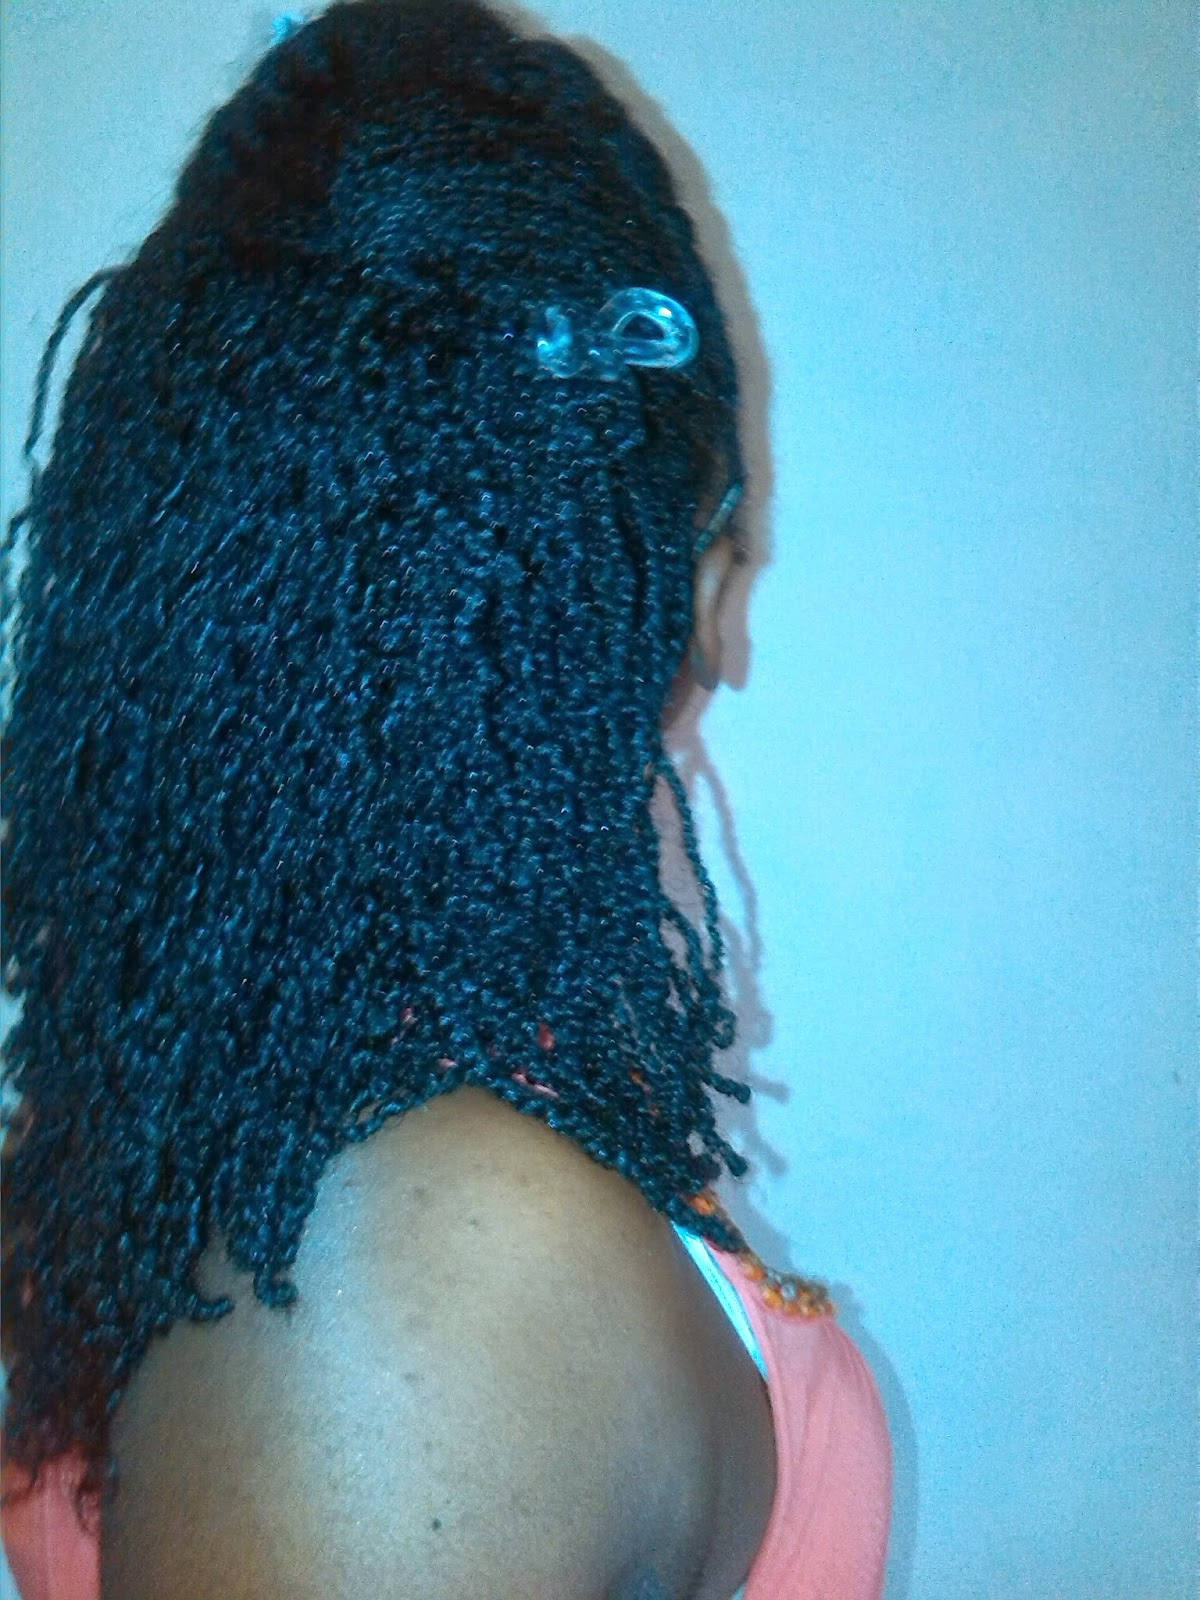 natural hair, long natural hair, afro hair, afro puff, jamaican naturals, caribbean naturals, waist length natural hair, Kreamy Kurls, natural hair blogger, long black hair,natural hair journey, long term transitioner, transitioning hair